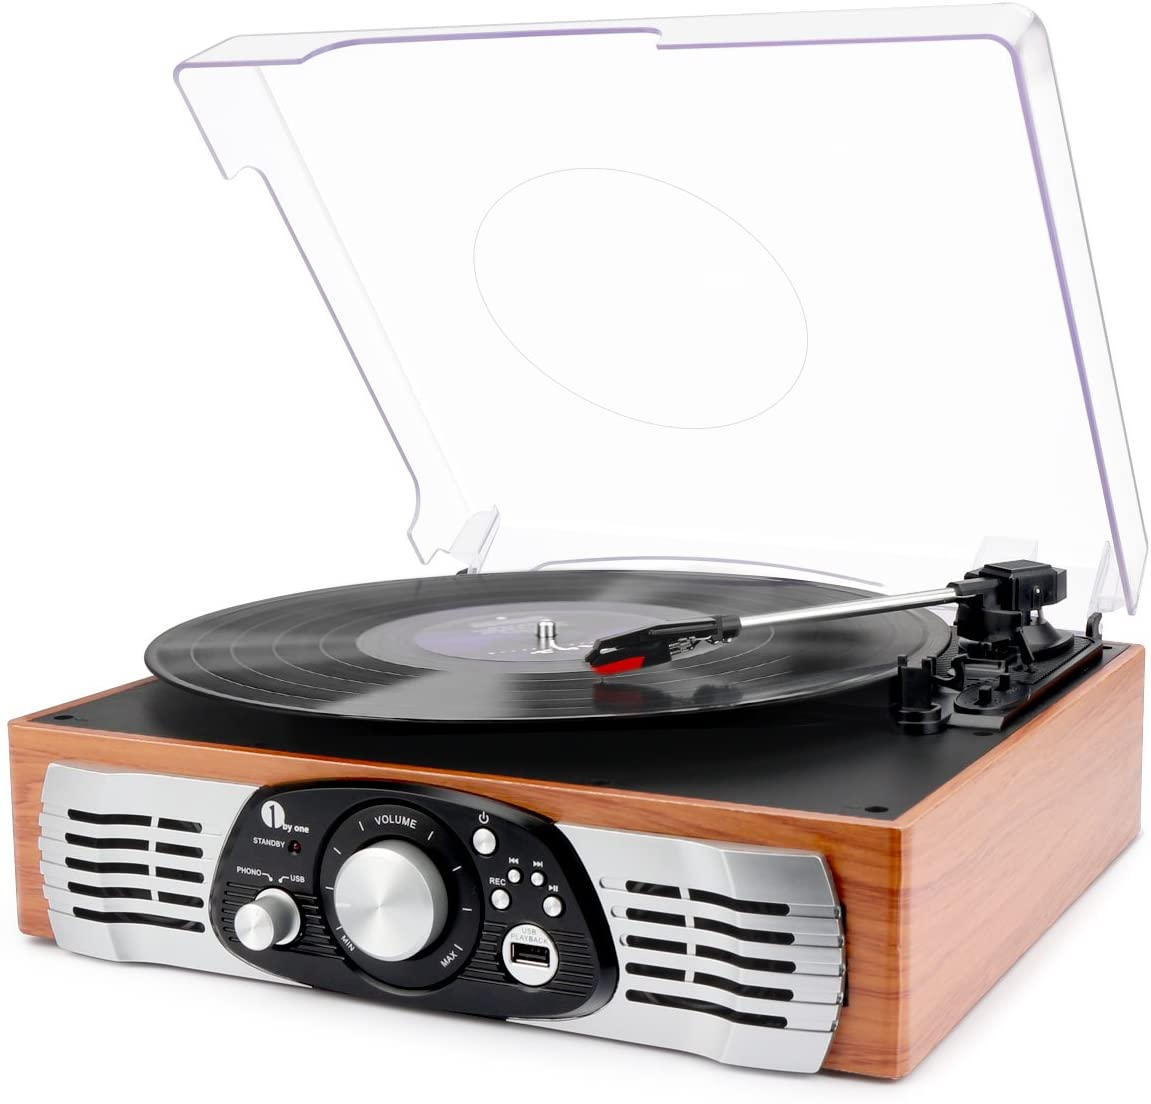 1byone Turntable 471NA-0003 Exterior Design